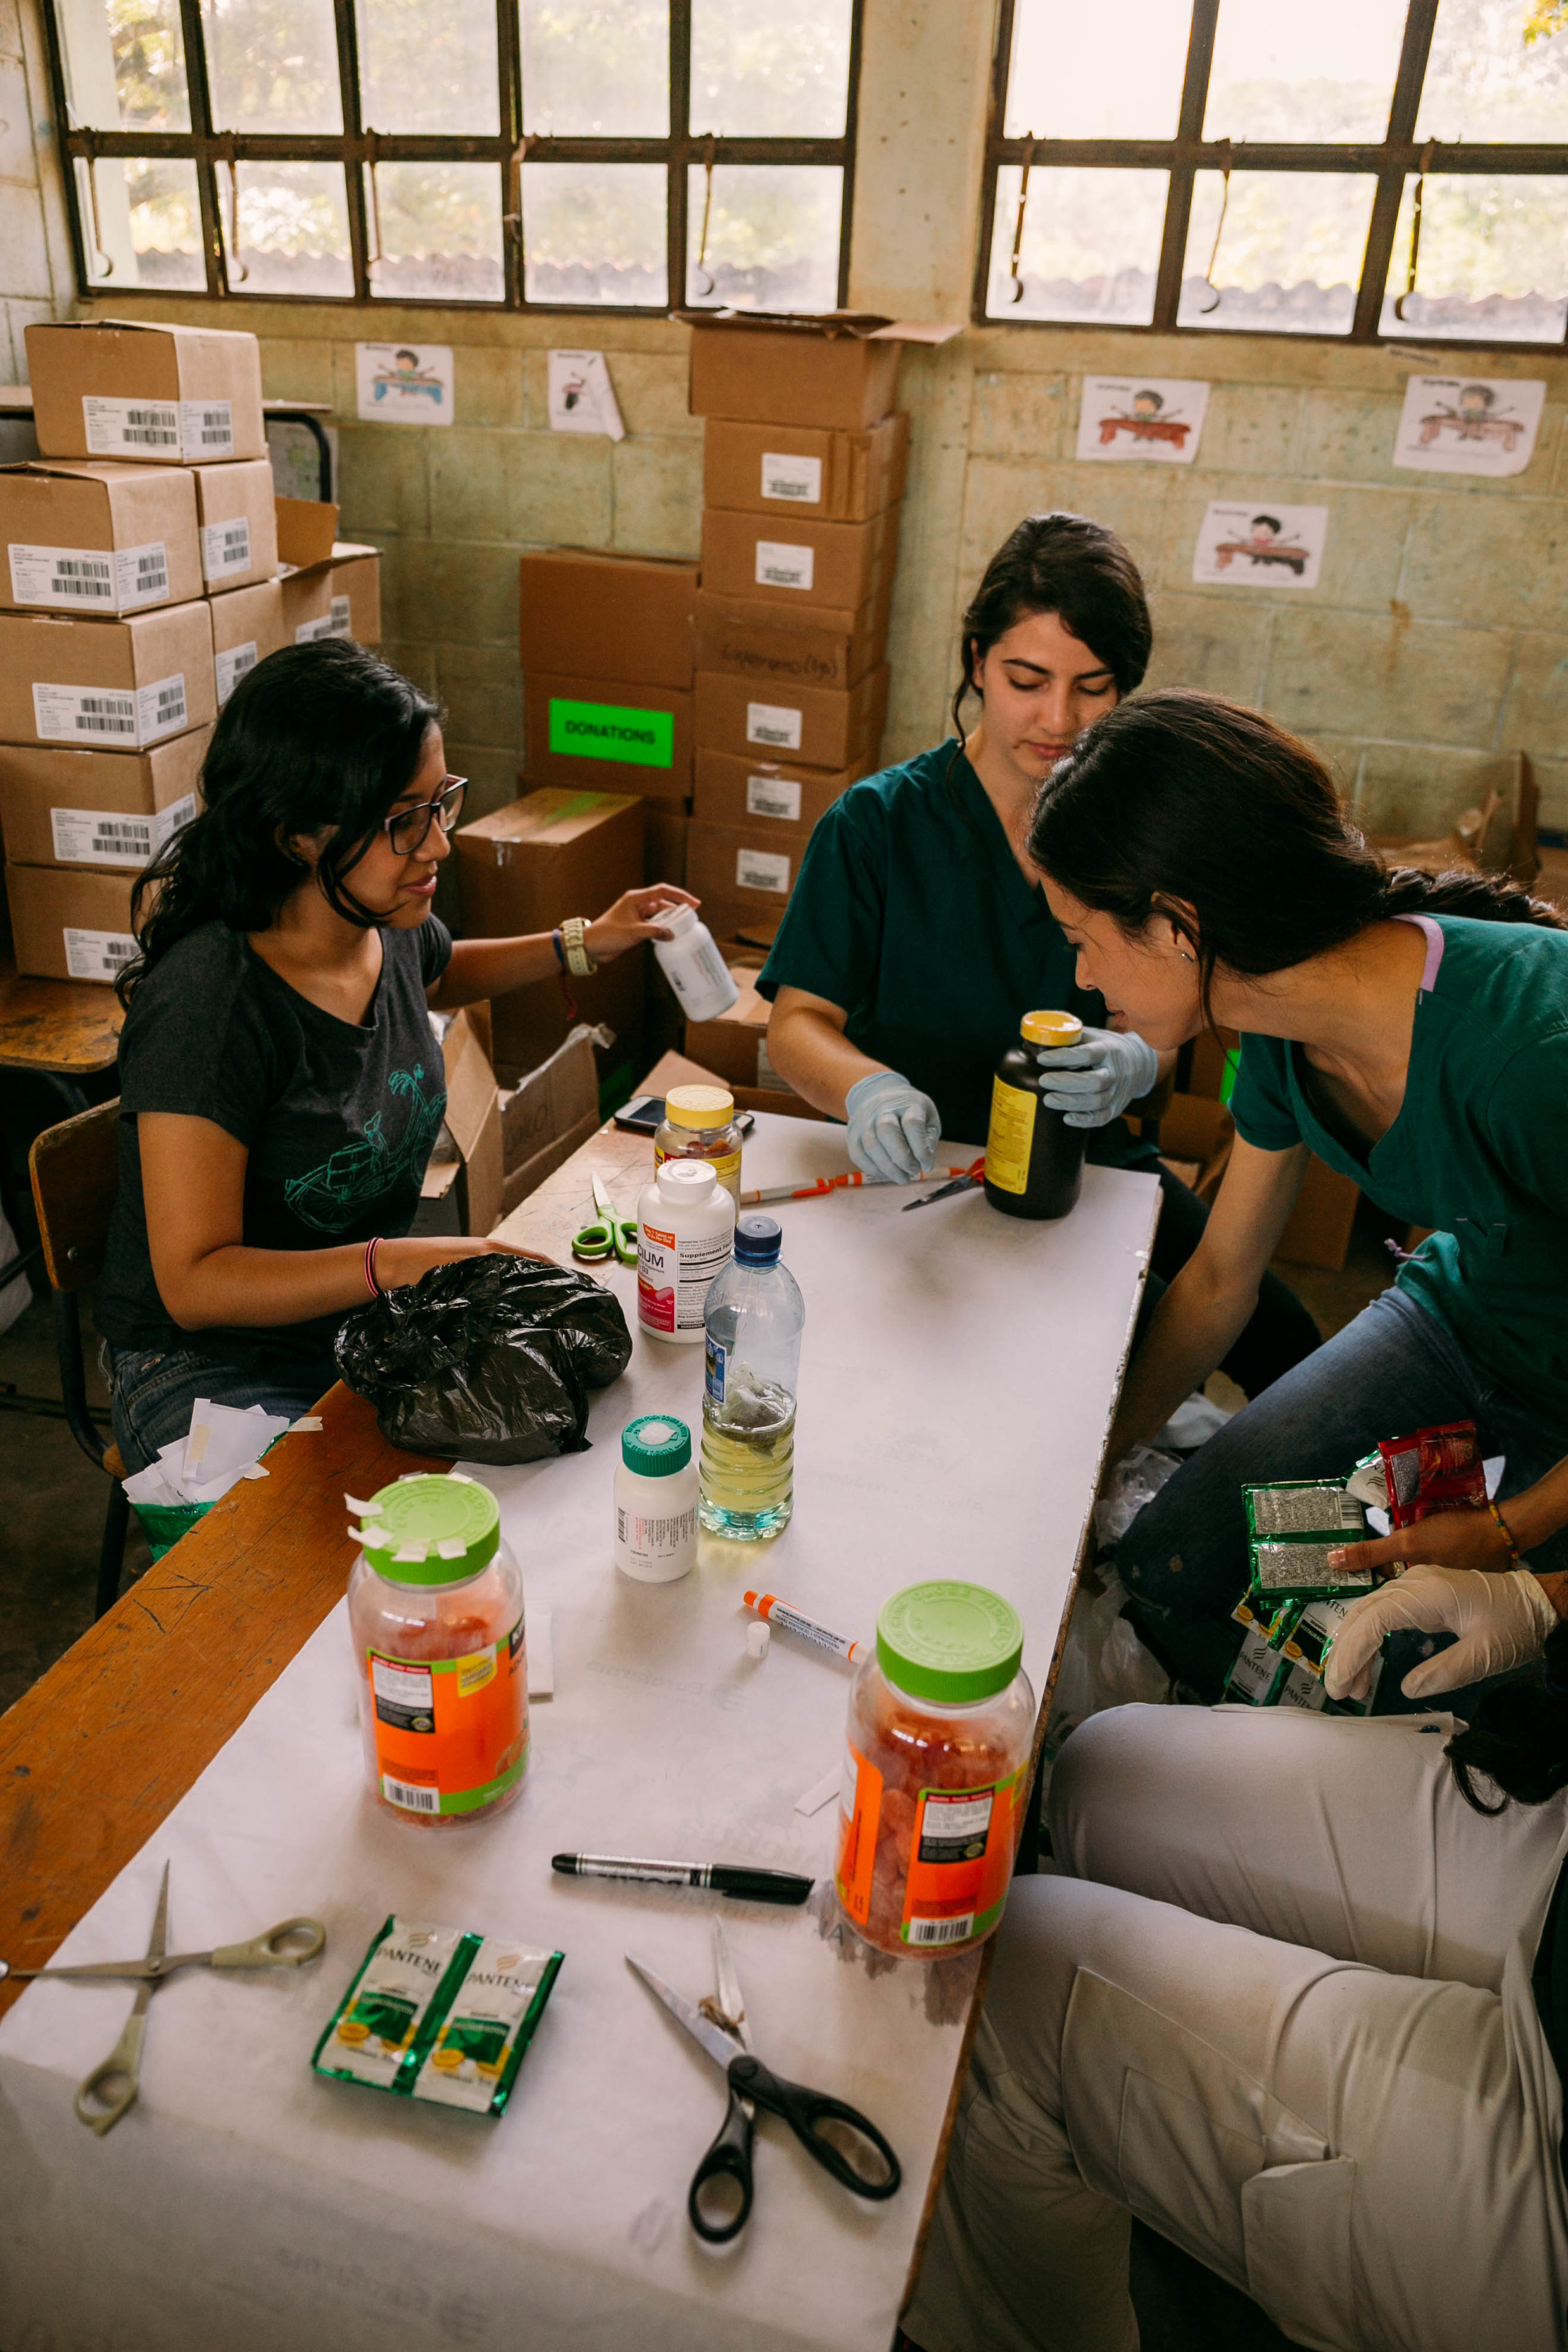 we were able to have a full pharmacy because of the donations received. these pharmacists who volunteered their time and skills, kept an inventory and gave prescriptions to the patients, free of cost.